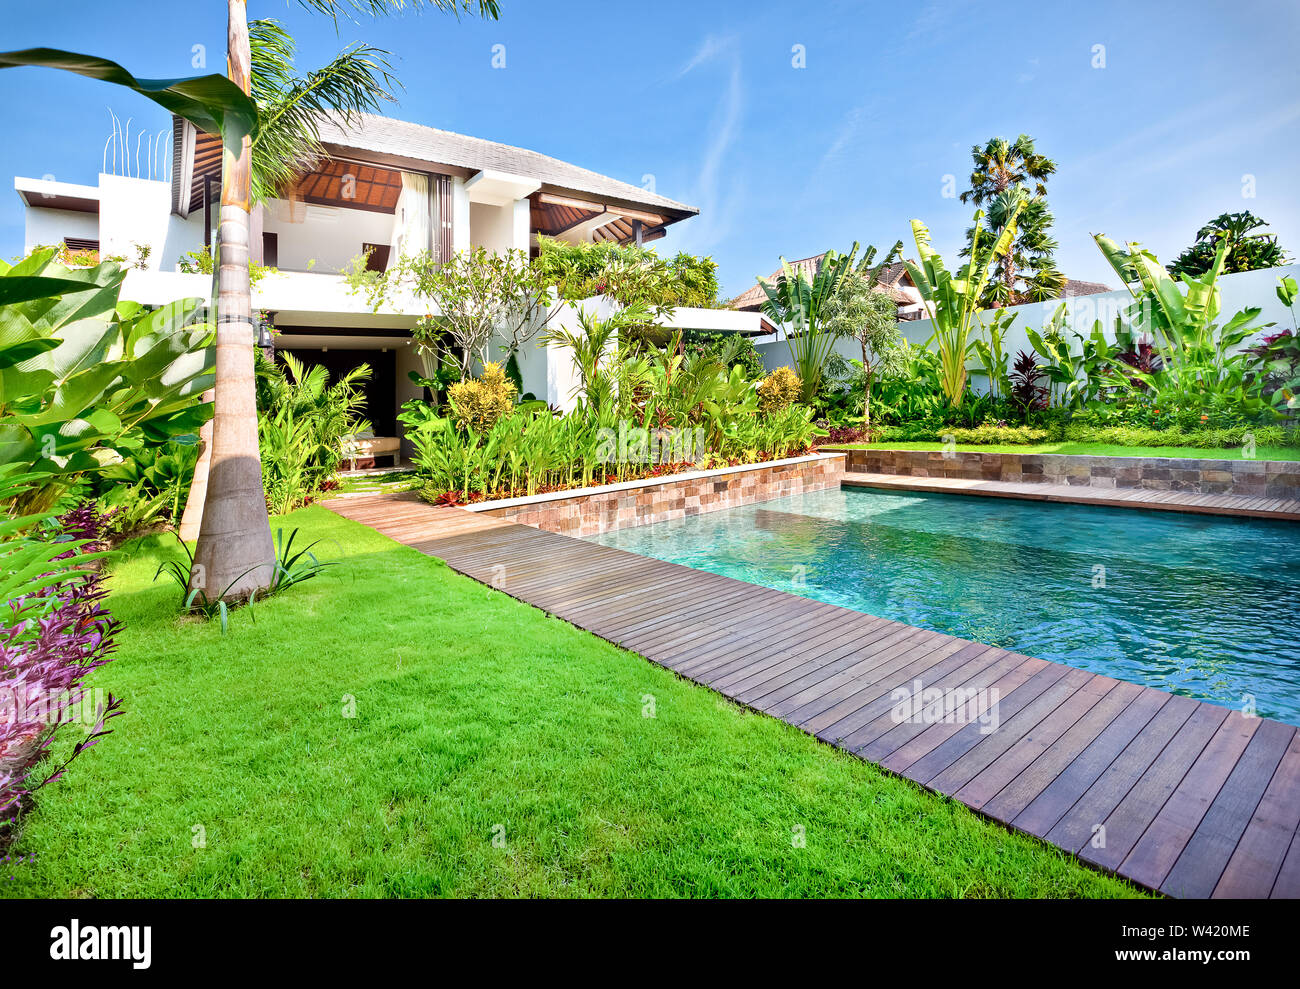 Green lawn with a garden including swimming pool in a modern house and blue sky - Stock Image